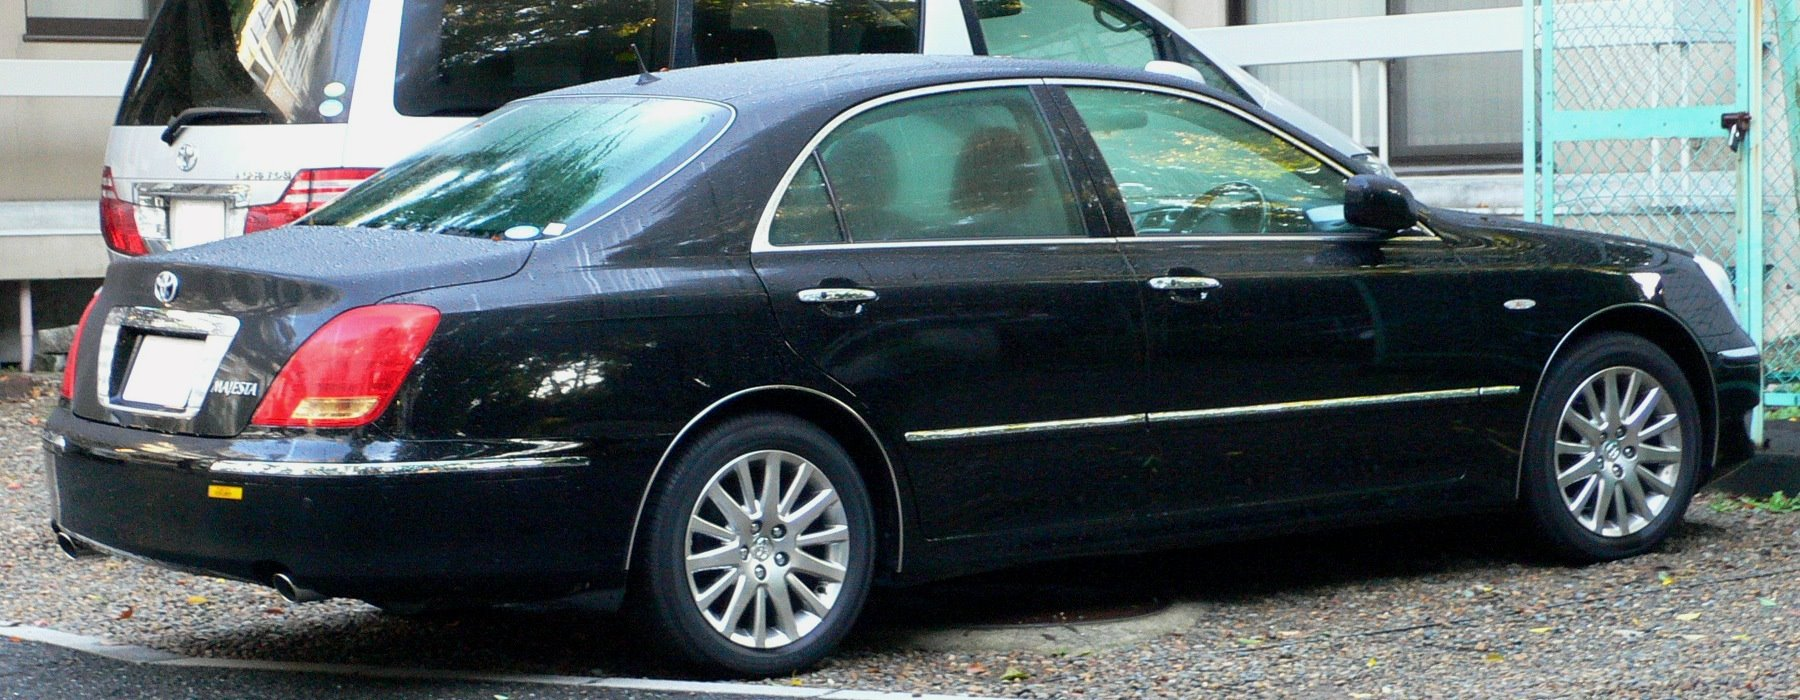 toyota crown-pic. 3